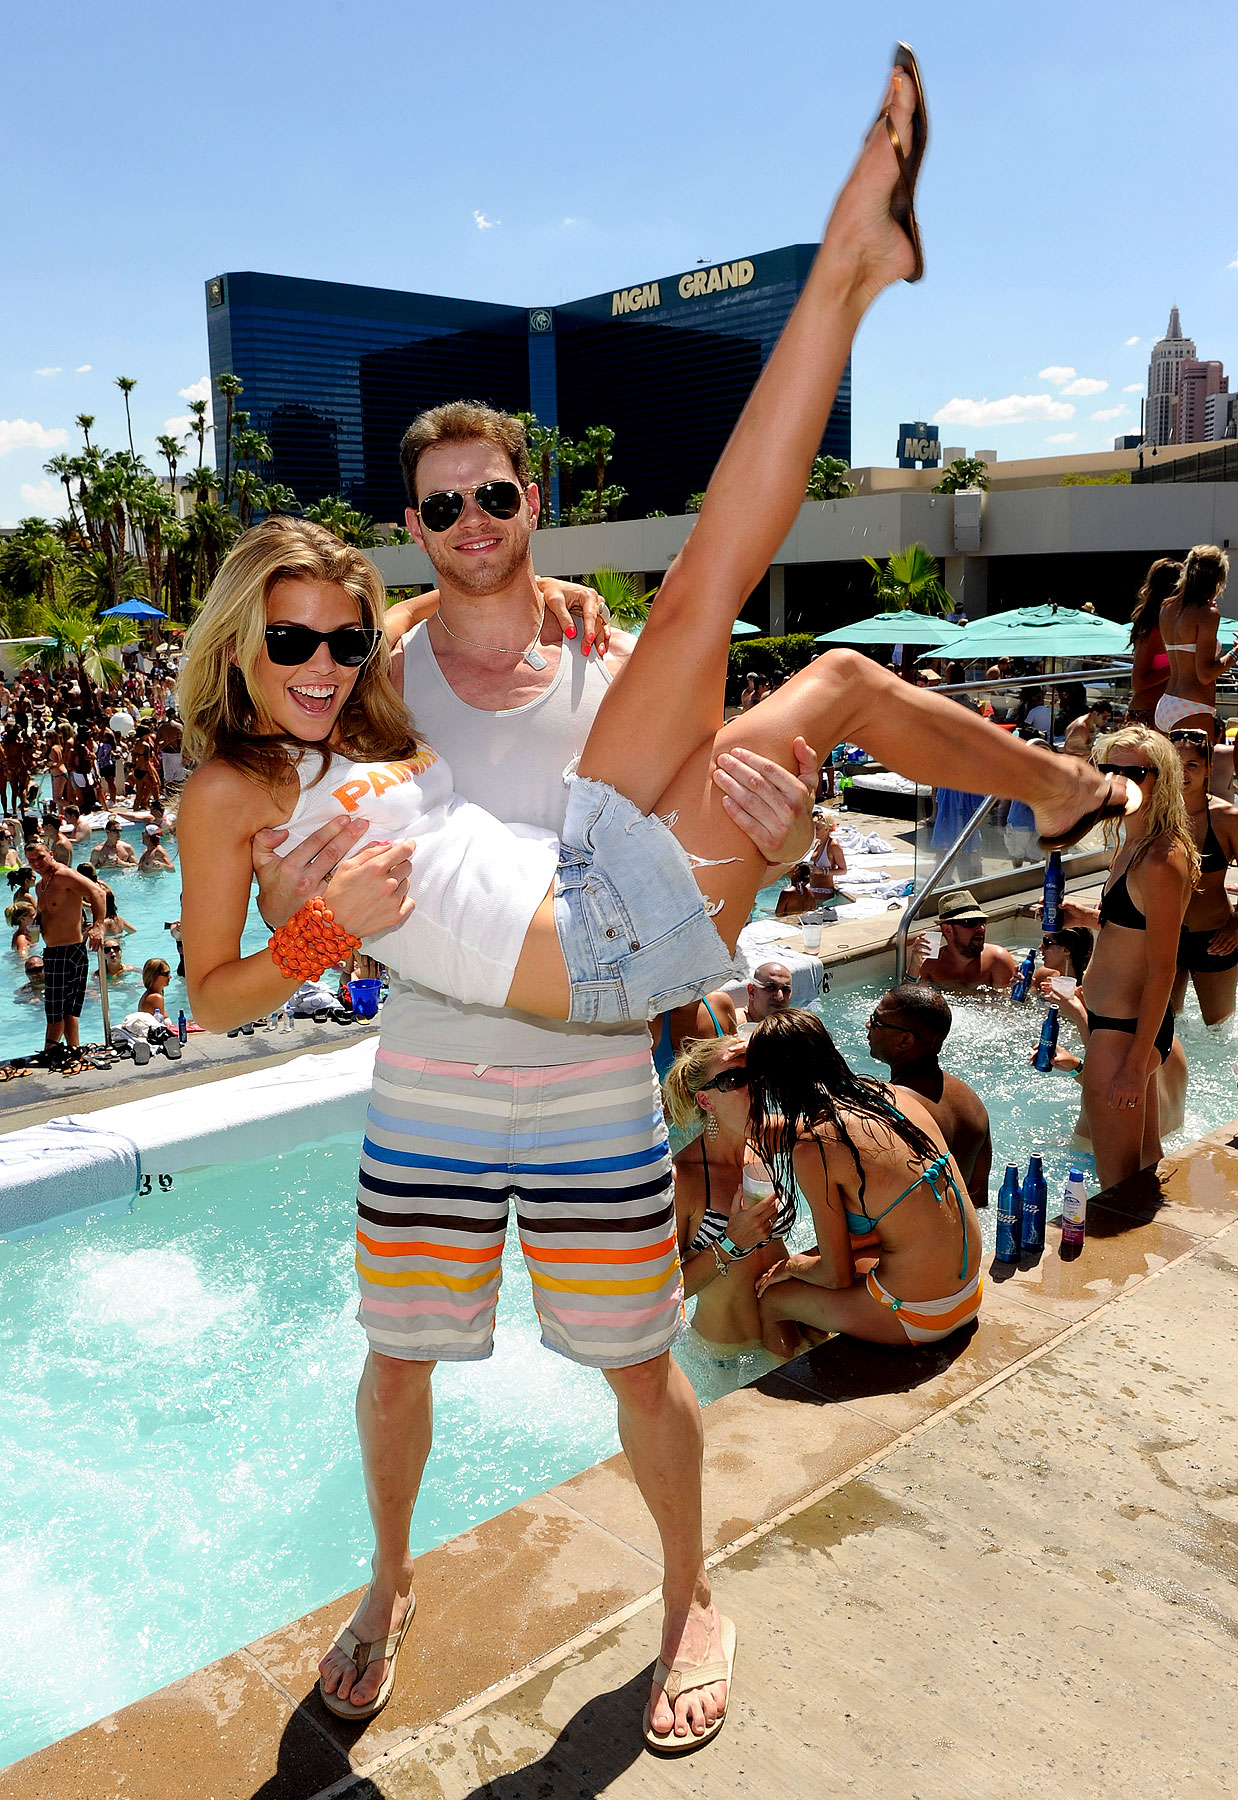 Kellan Lutz Gives AnnaLynne McCord a Lift for Her Birthday (PHOTOS)